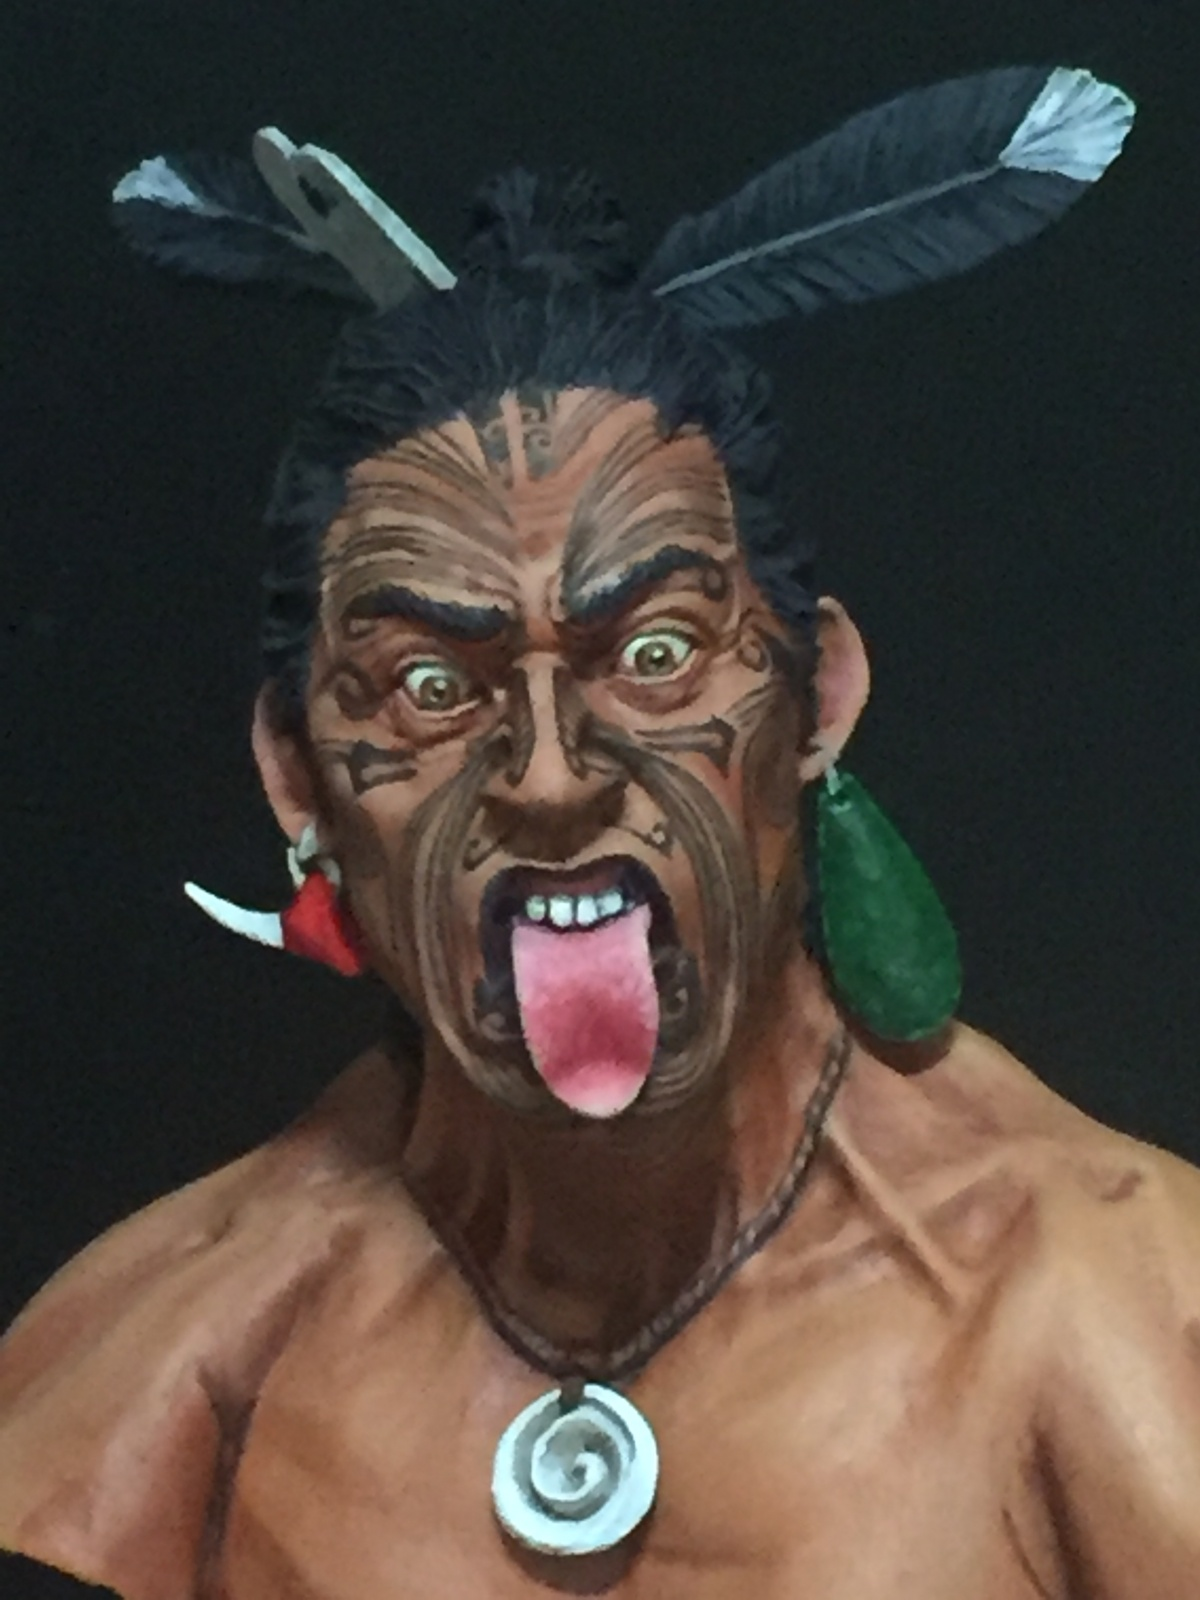 282 Best Maori Faces Images On Pinterest: Maori Warrior By Tony Dawe · Putty&Paint